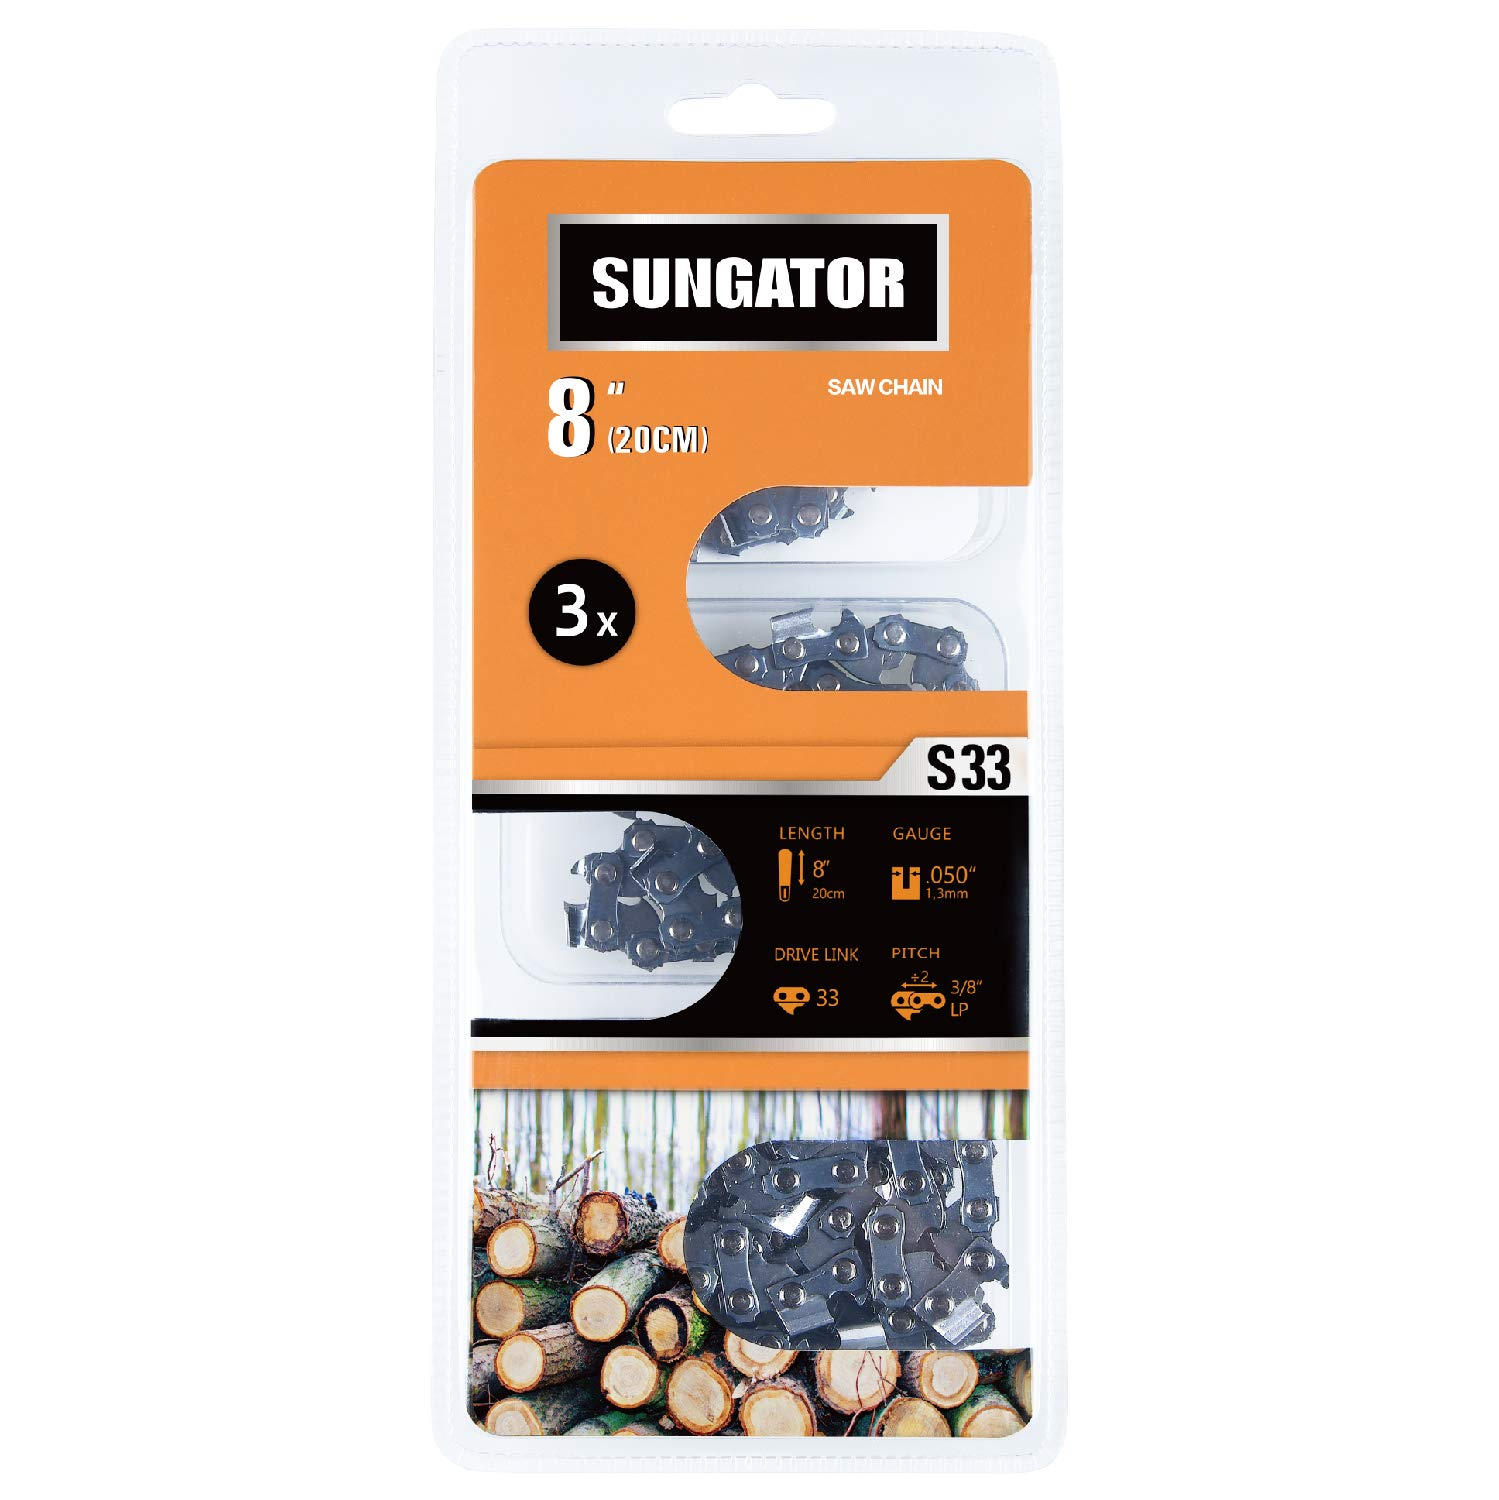 SUNGATOR 3-Pack 8 Inch Chainsaw Chain SG-S33, 3/8'' LP Pitch - .050'' Gauge - 33 Drive Links Fits Chicago, Earthwise, Greenworks, Sun Joe and More by SUNGATOR